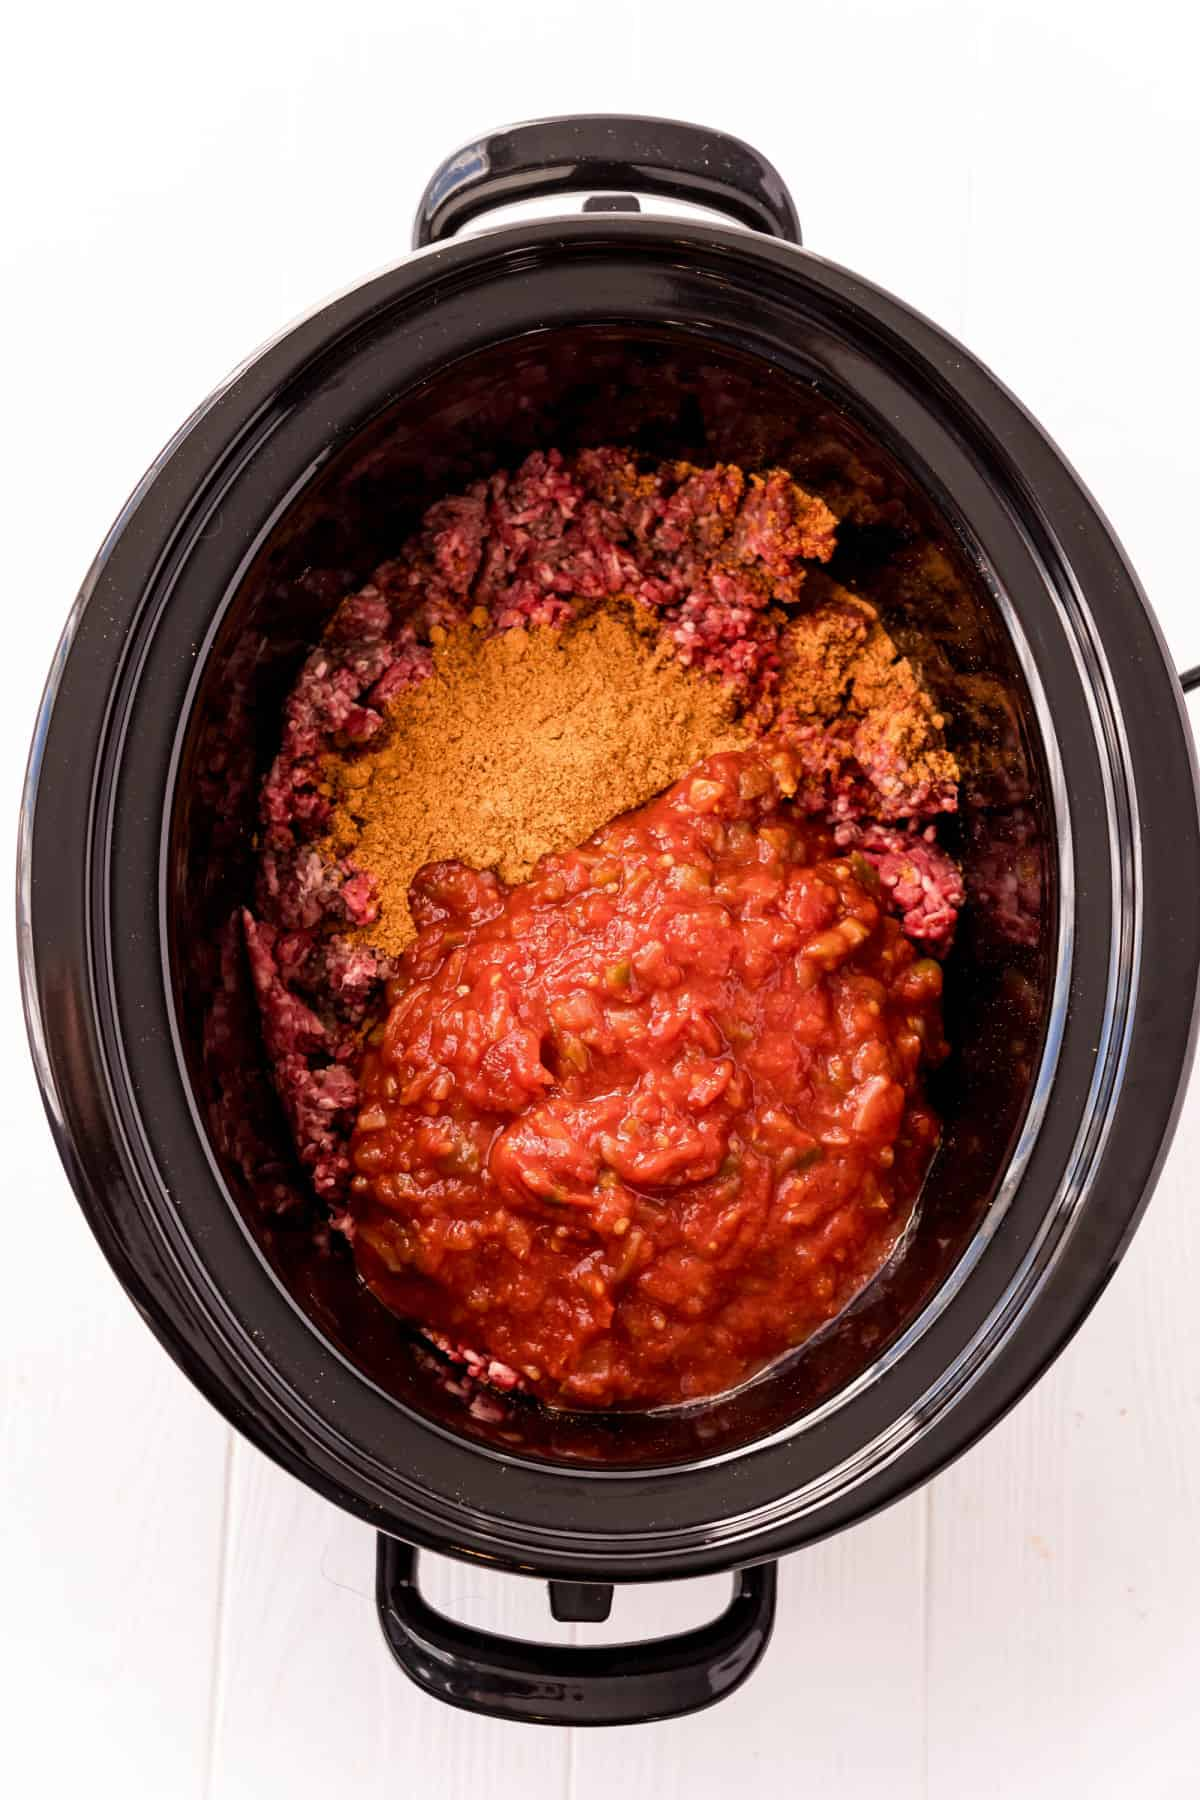 Black slow cooker with ingredients to make taco meat inside.